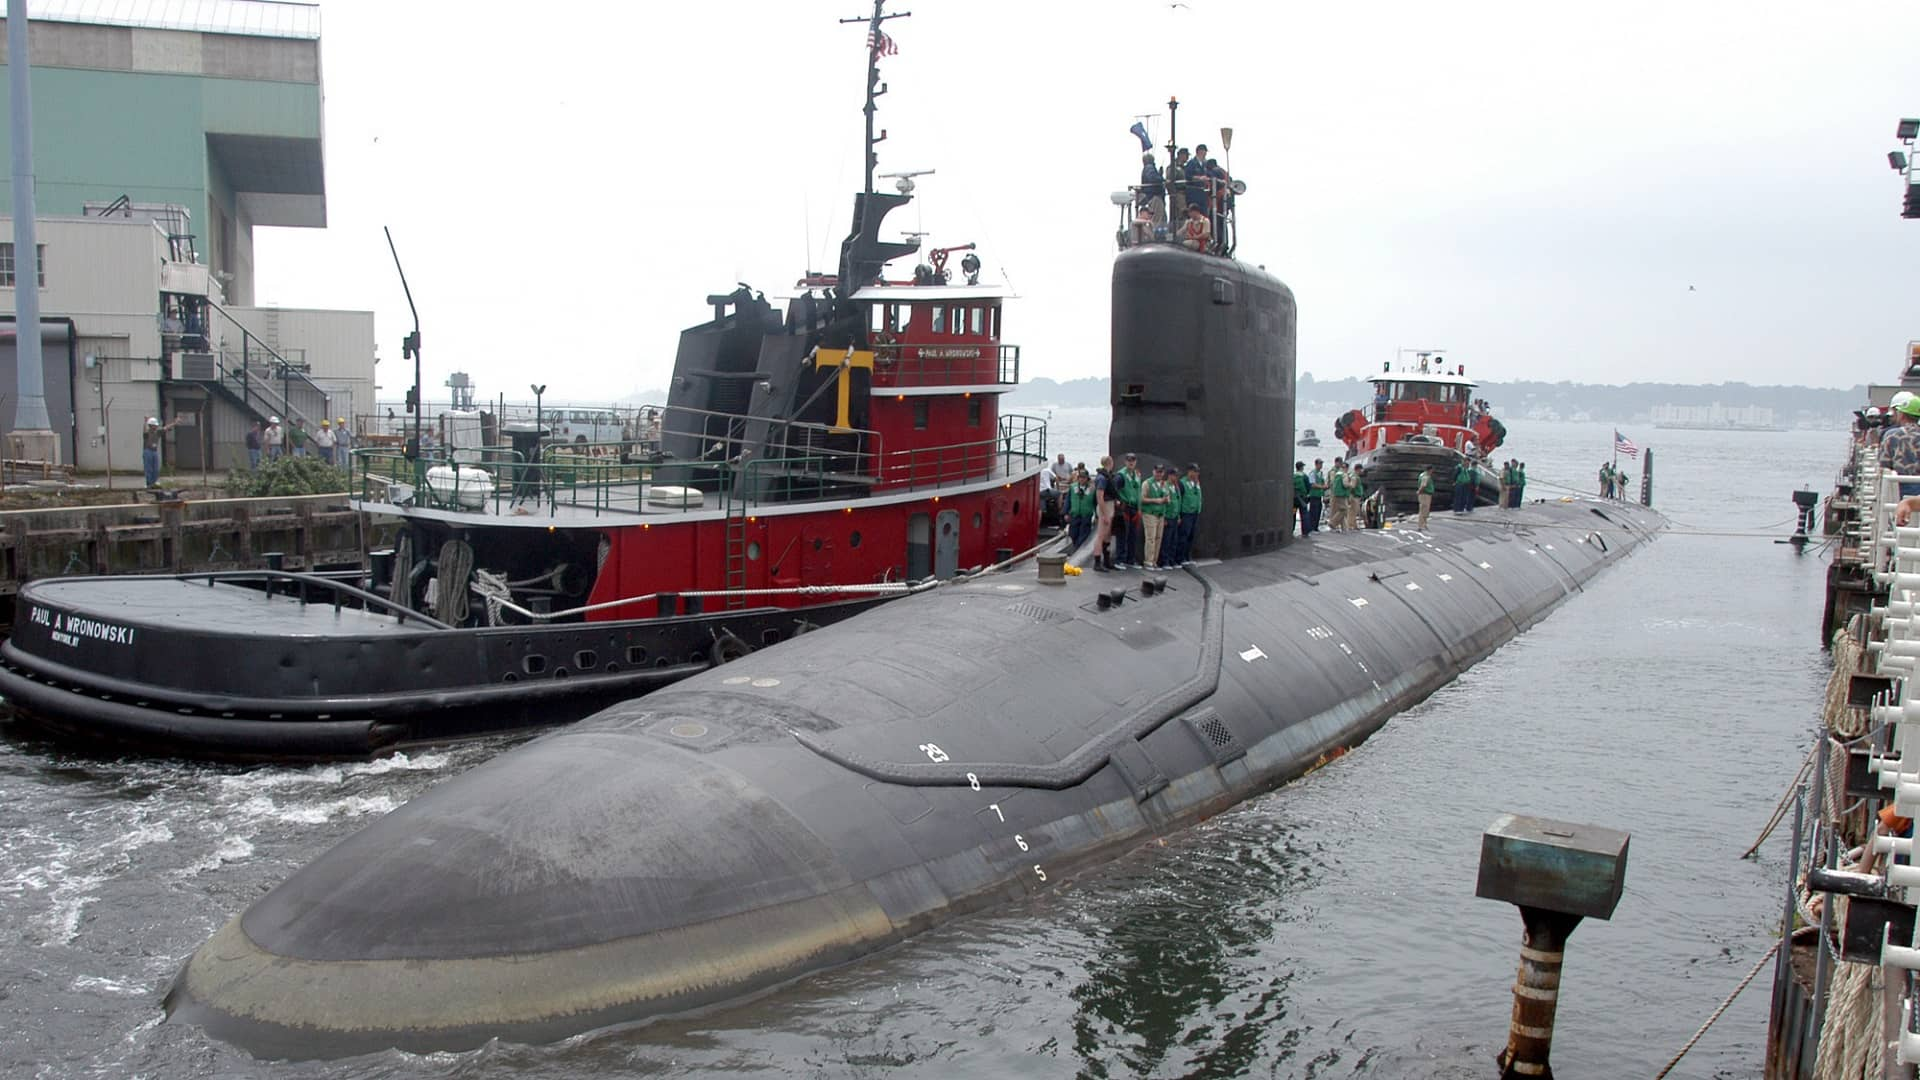 Navy nuclear engineer from MD charged with trying to pass secrets